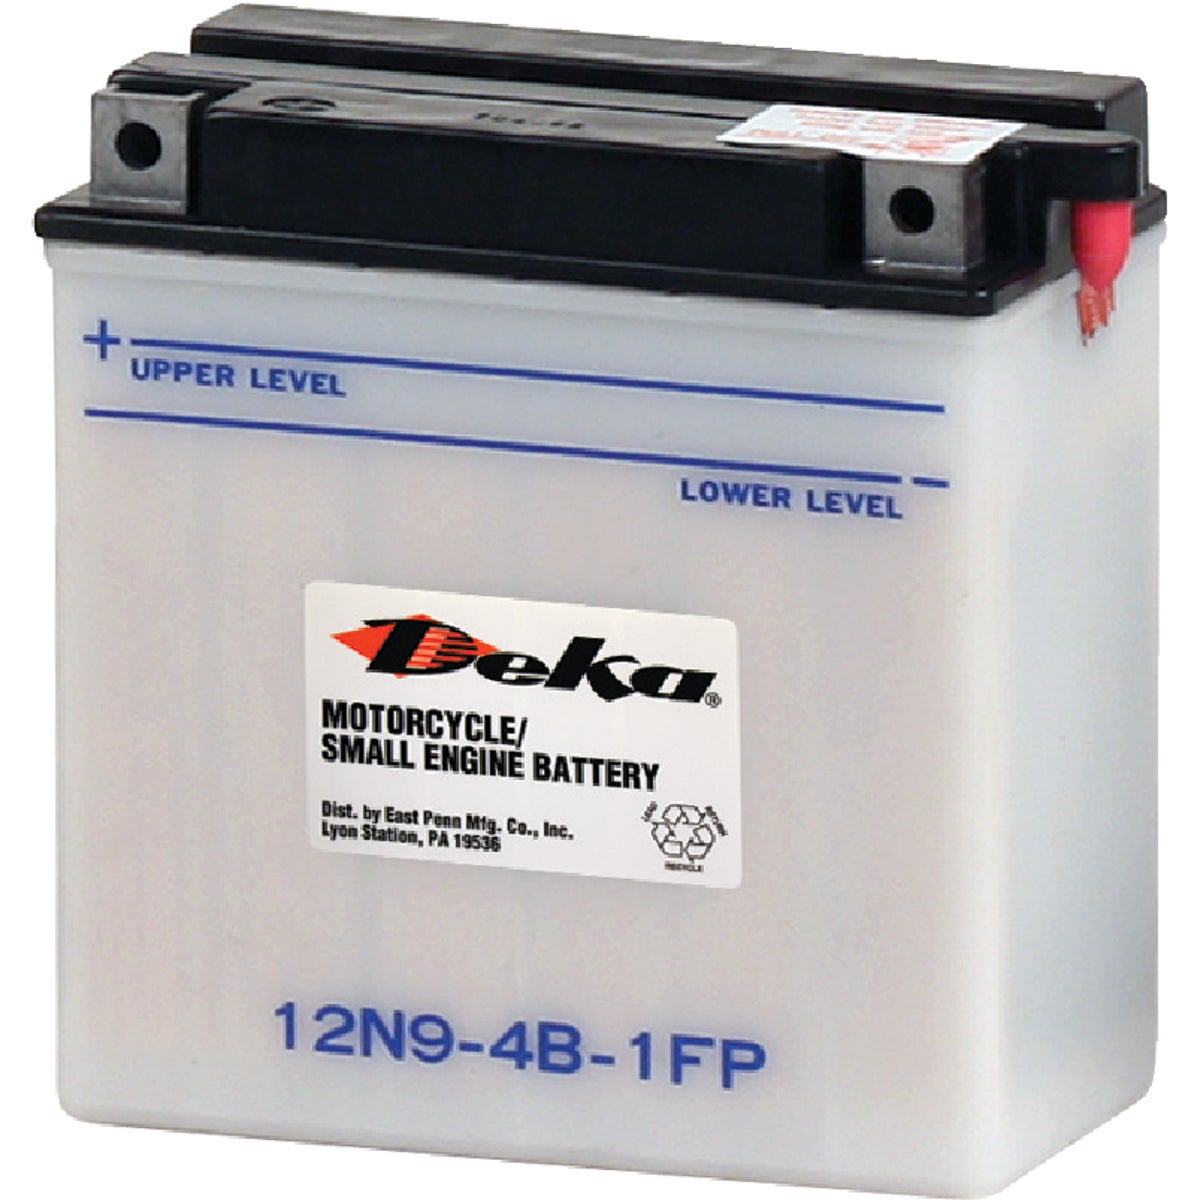 Deka Powersport Battery, 12N9-4B-1FP